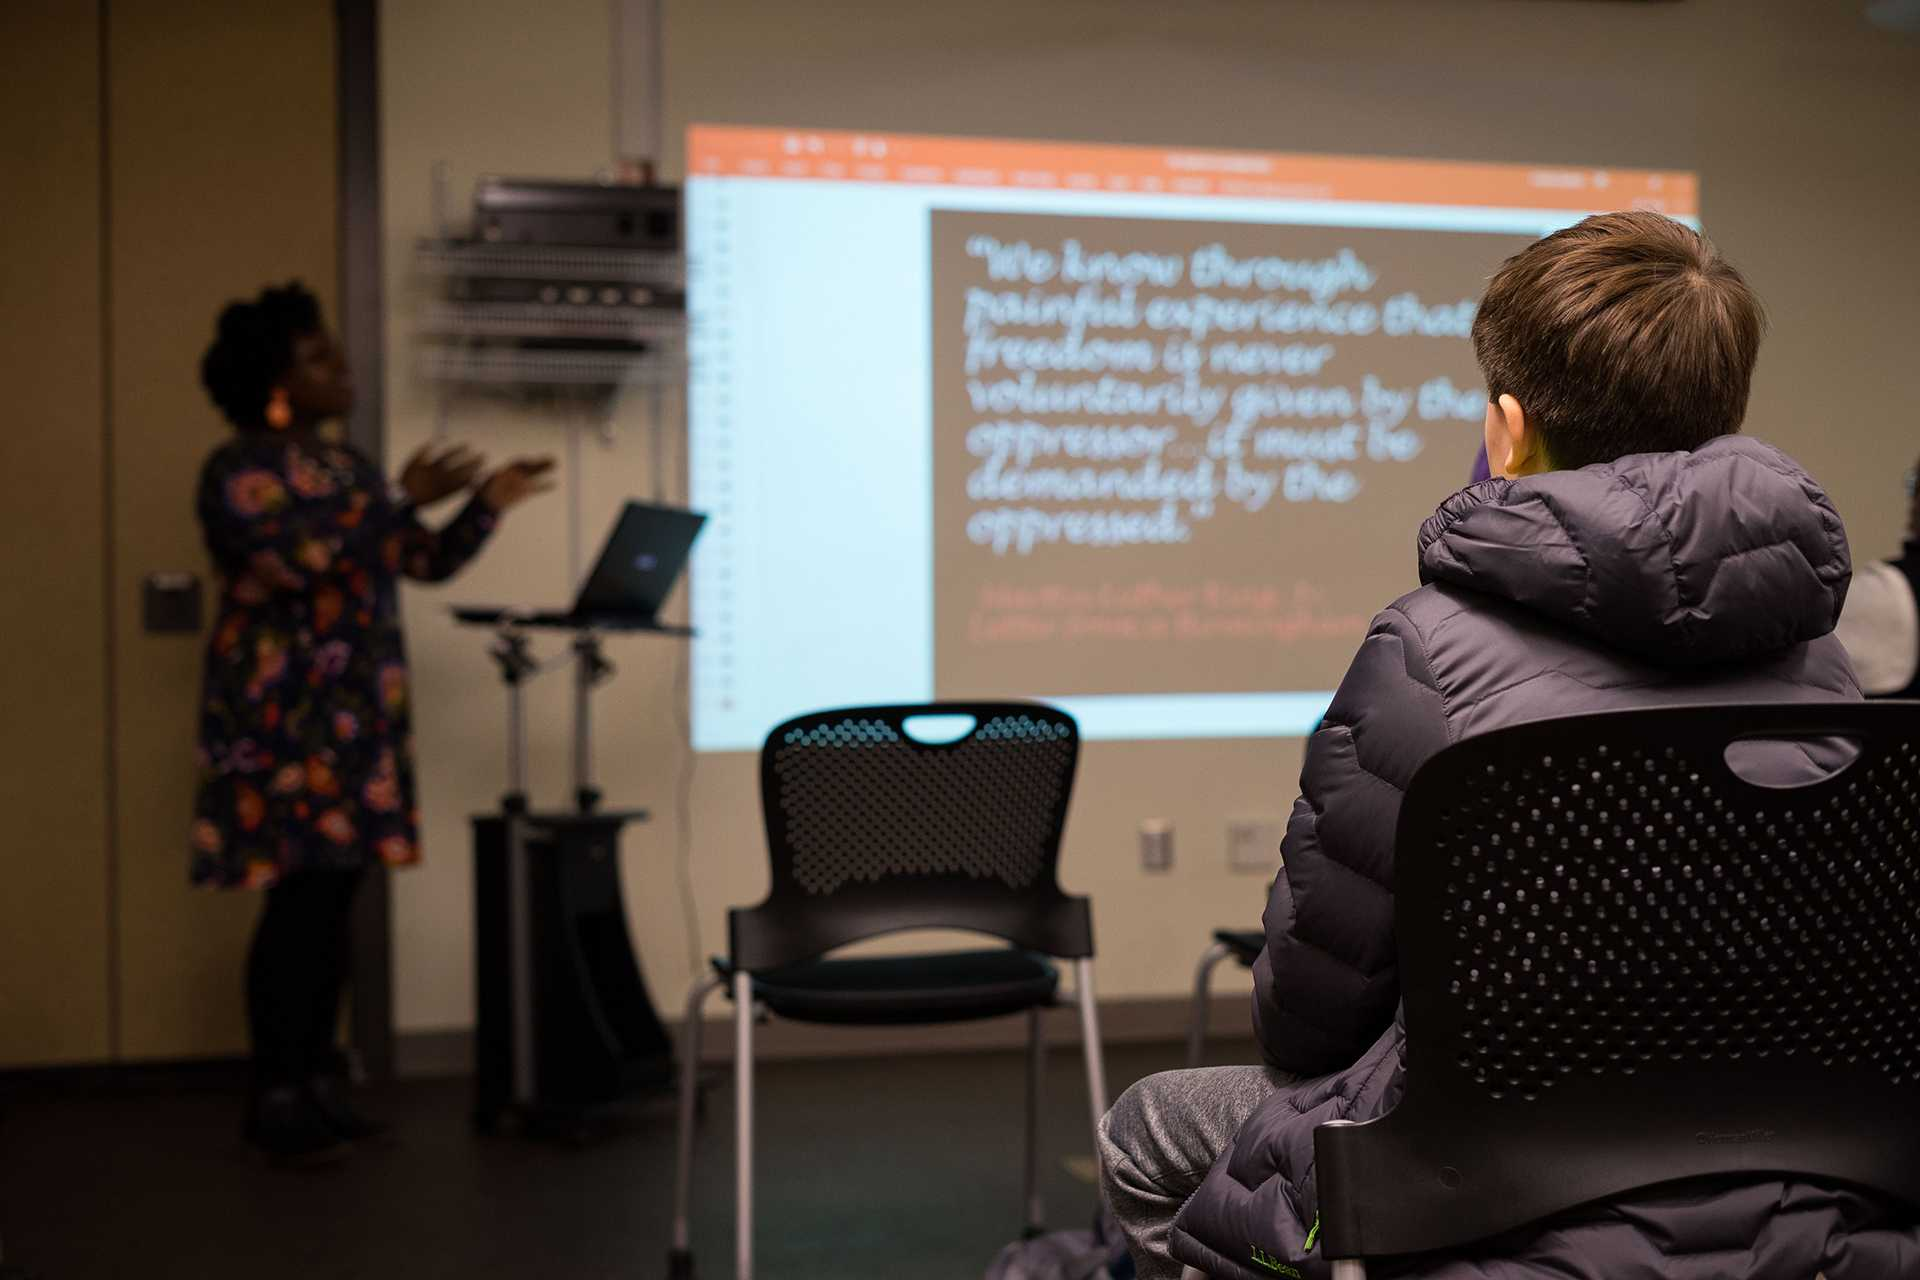 A young boy listens to a speaker at a presentation on the history of civil rights in Iowa on Thursday, Jan. 25, 2018. This event was put on by the African American Museum of Iowa. (Matthew Finley/The Daily Iowan)